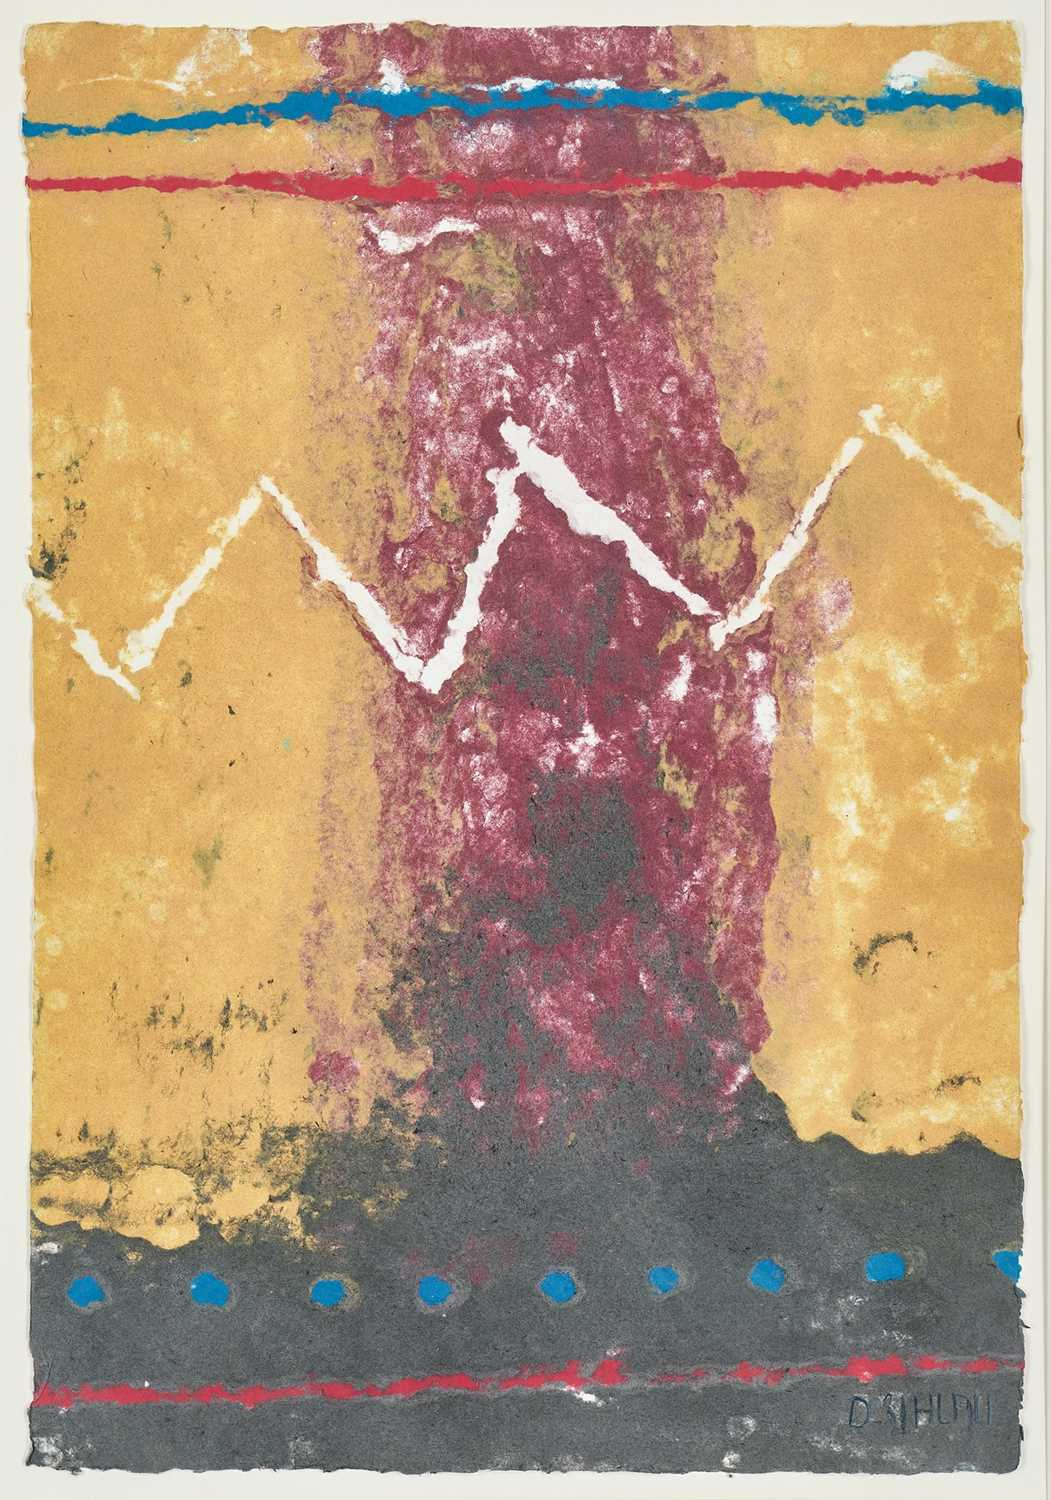 Lot 4 - Durant Sihlali (South Africa 1935-2004)